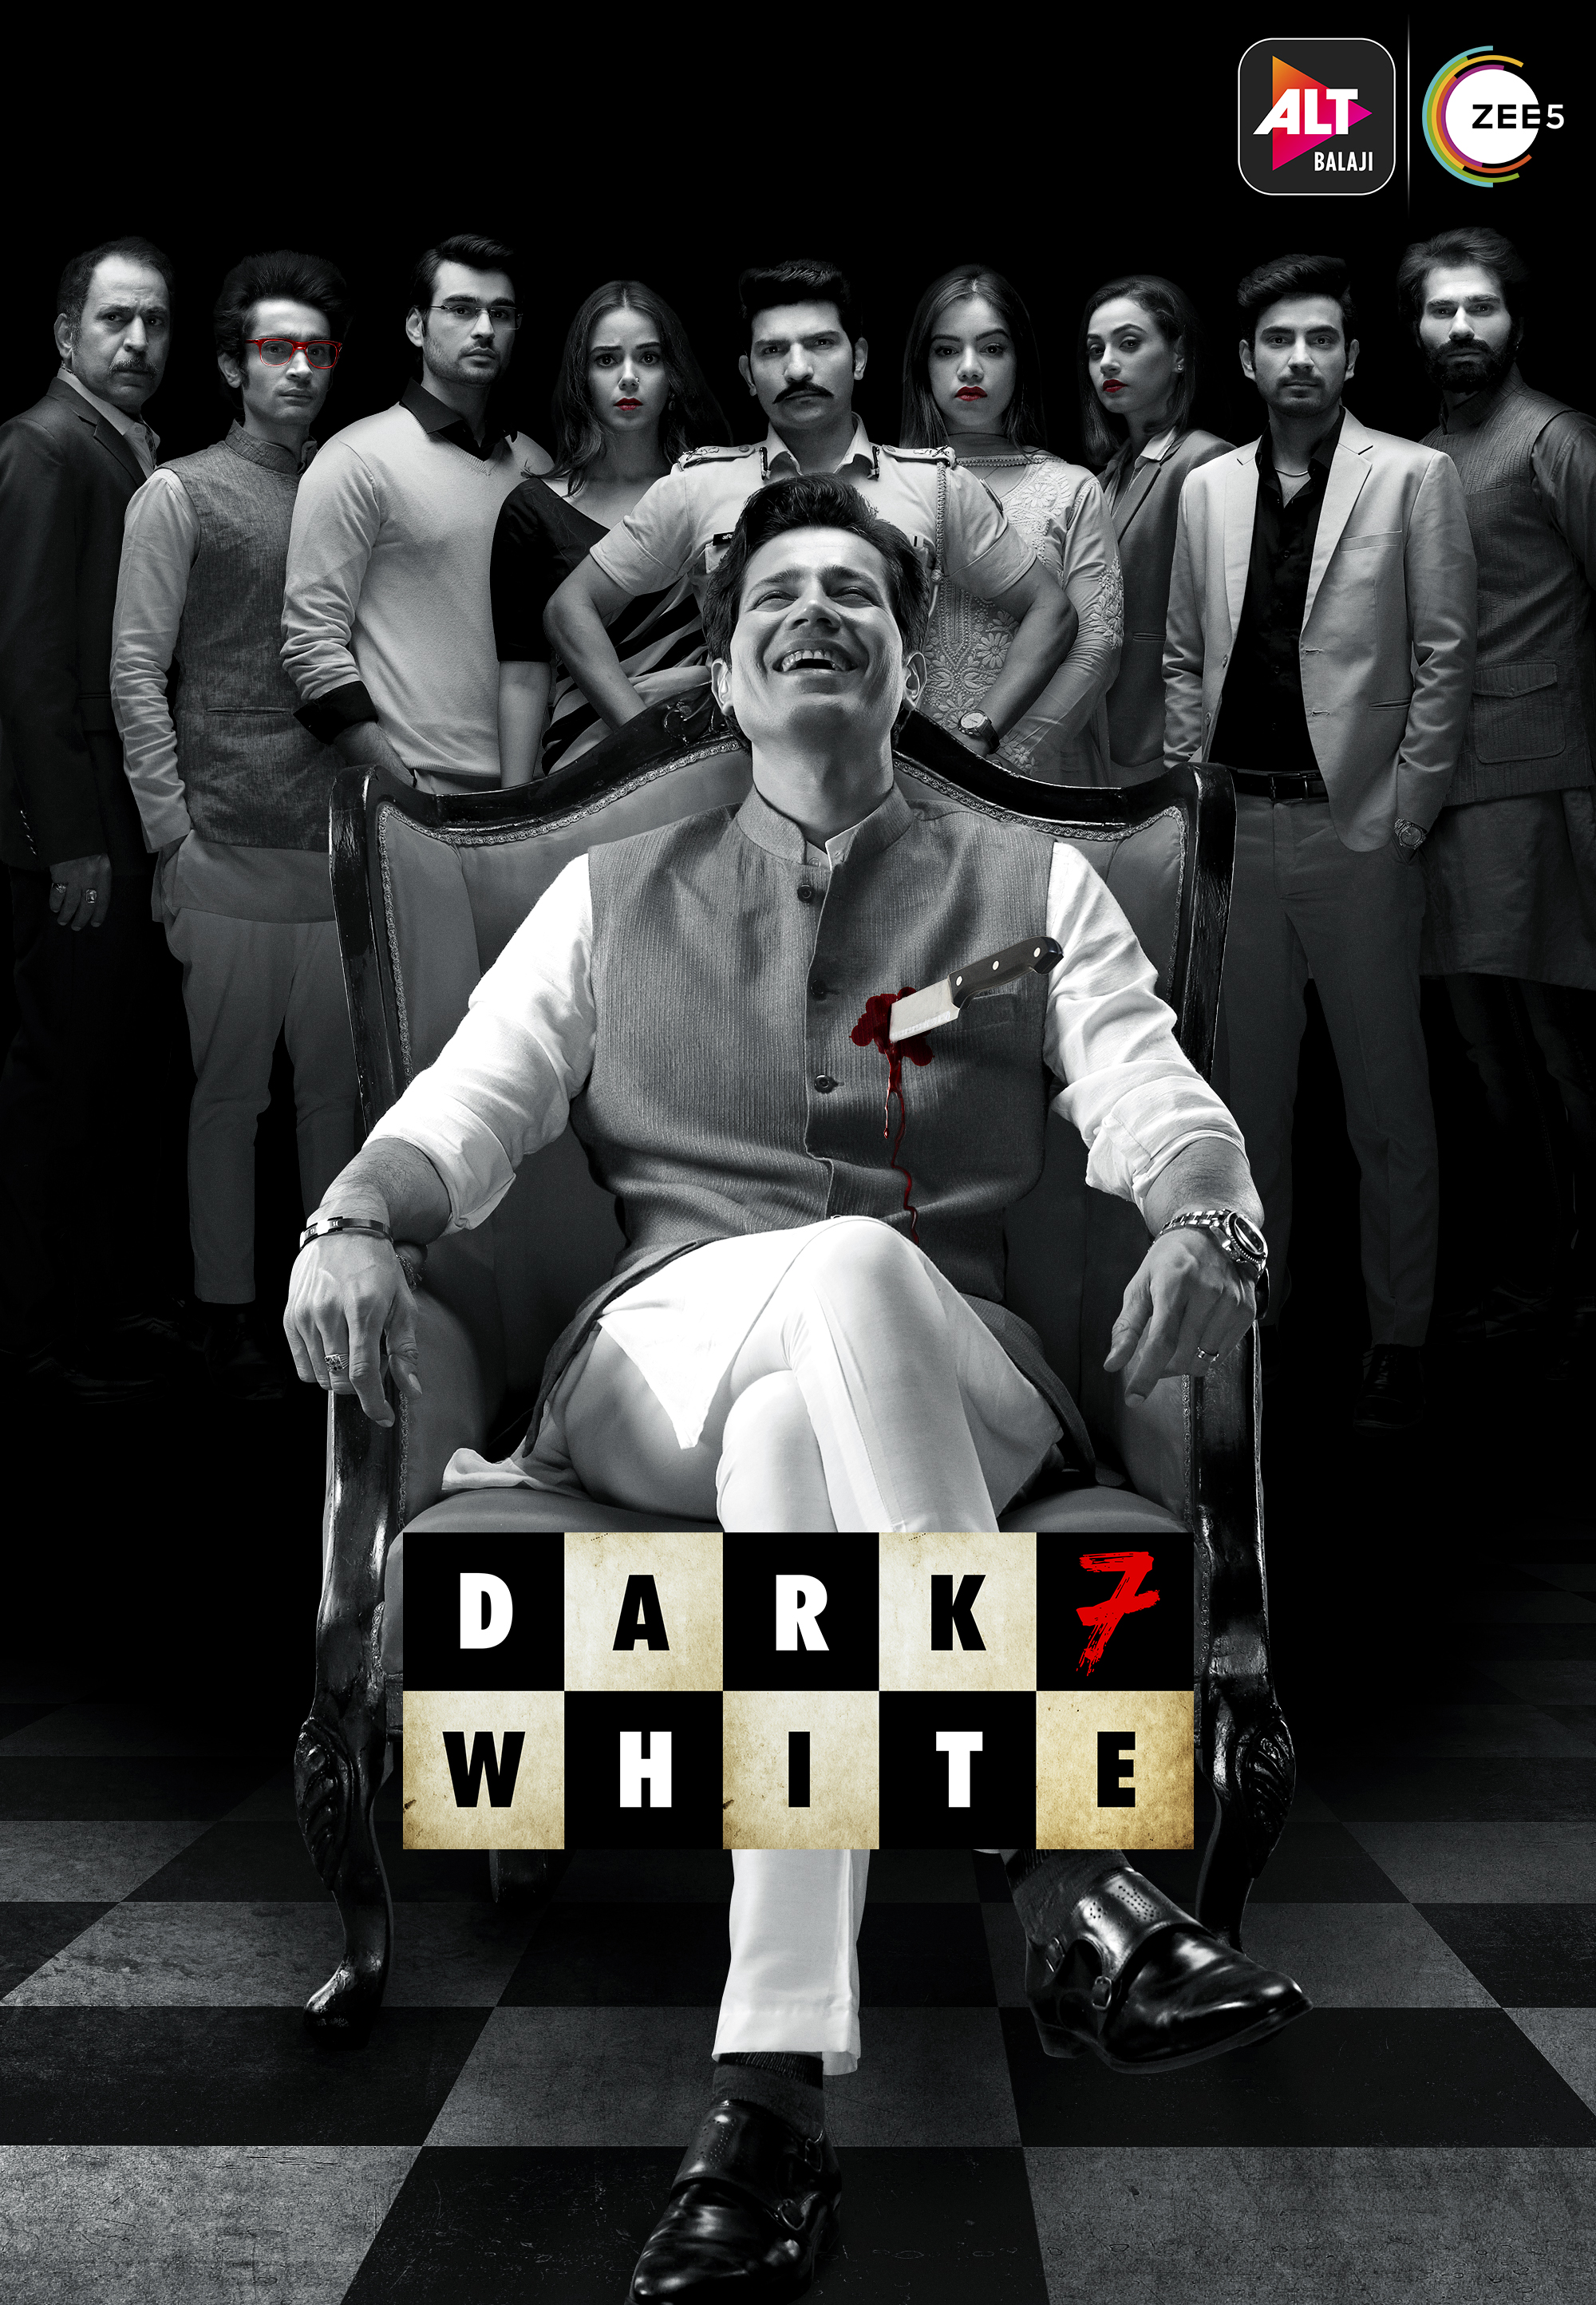 Dark 7 White 2020 S01 Hindi Complete ALTBalaji Original Web Series 645MB HDRip Download